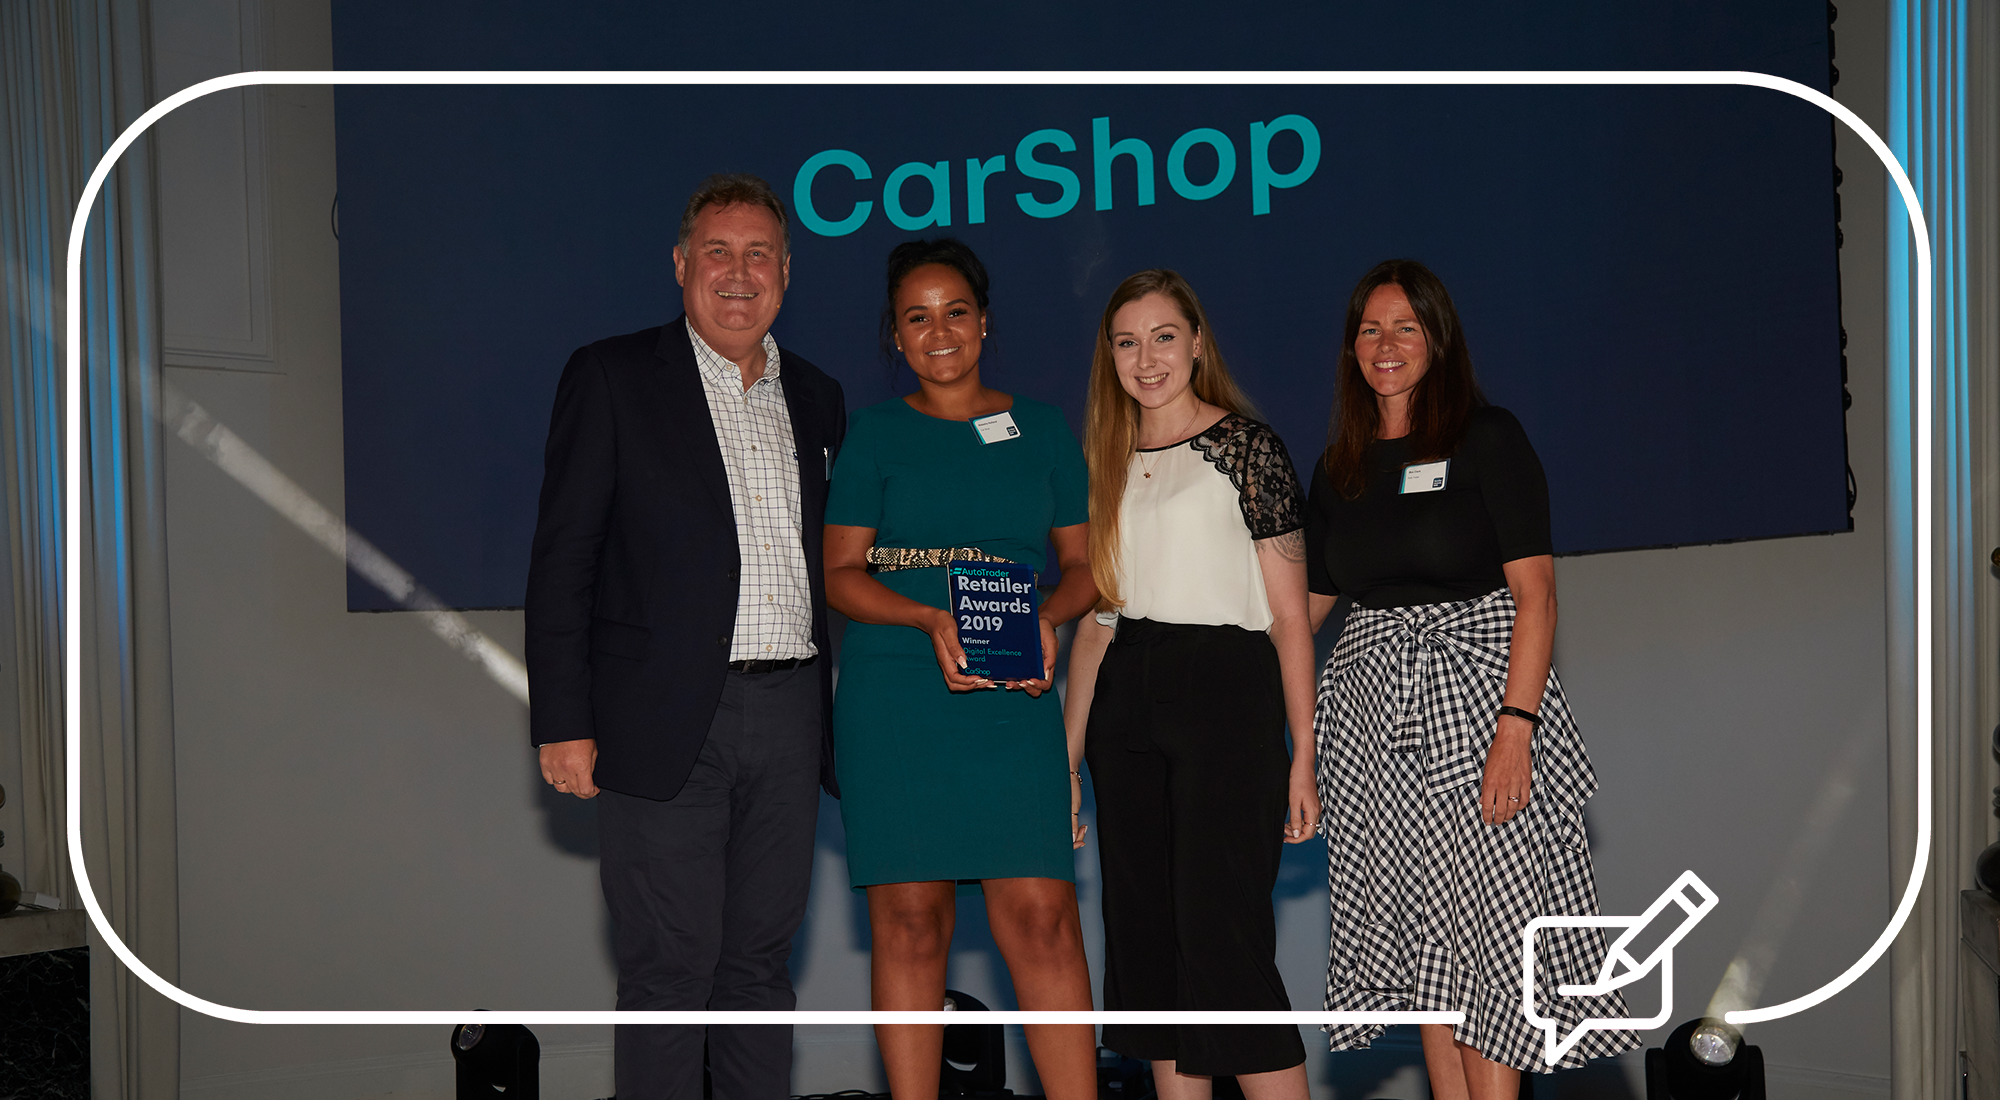 CarShop receives Auto Trader's Digital Excellence Award